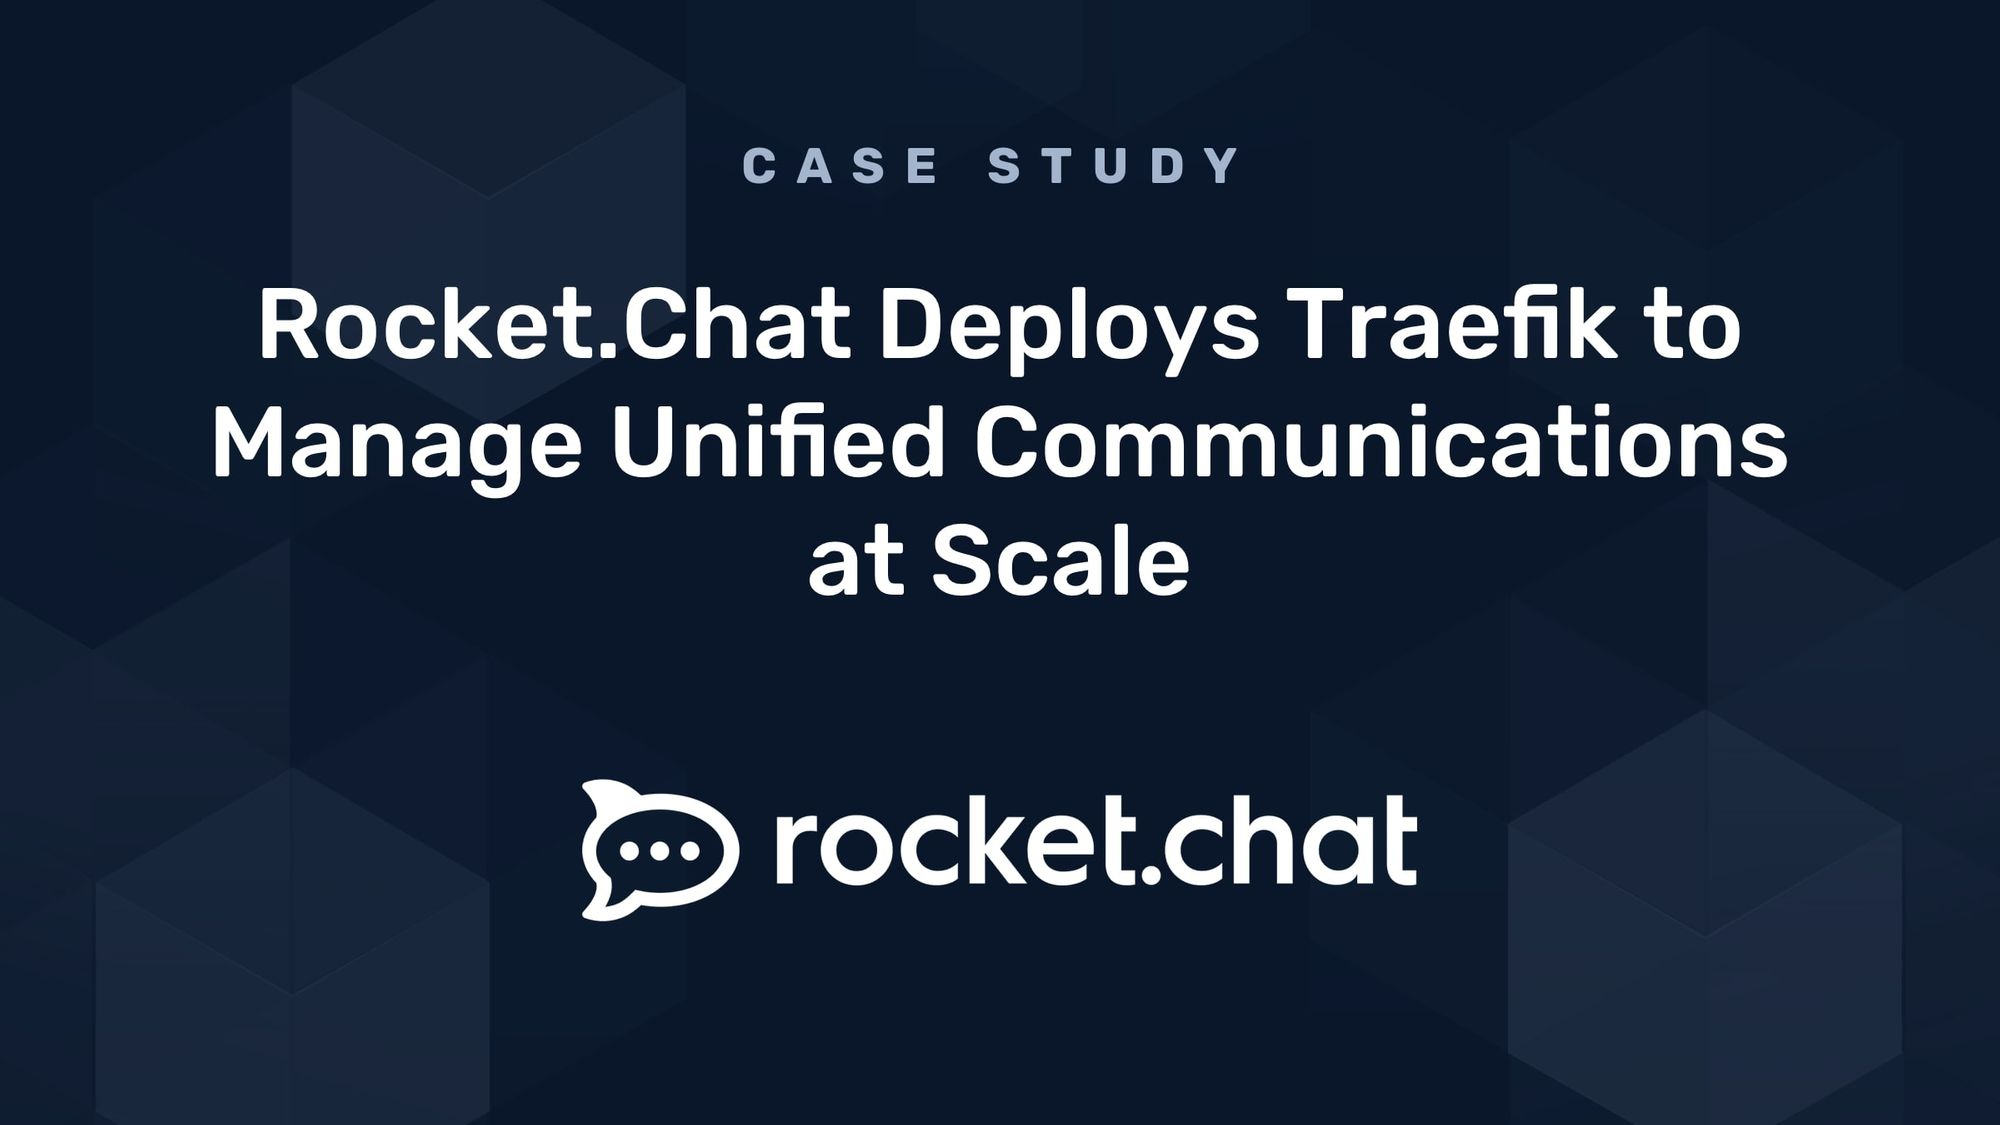 Case Study: Rocket.Chat Deploys Traefik to Manage Unified Communications at Scale